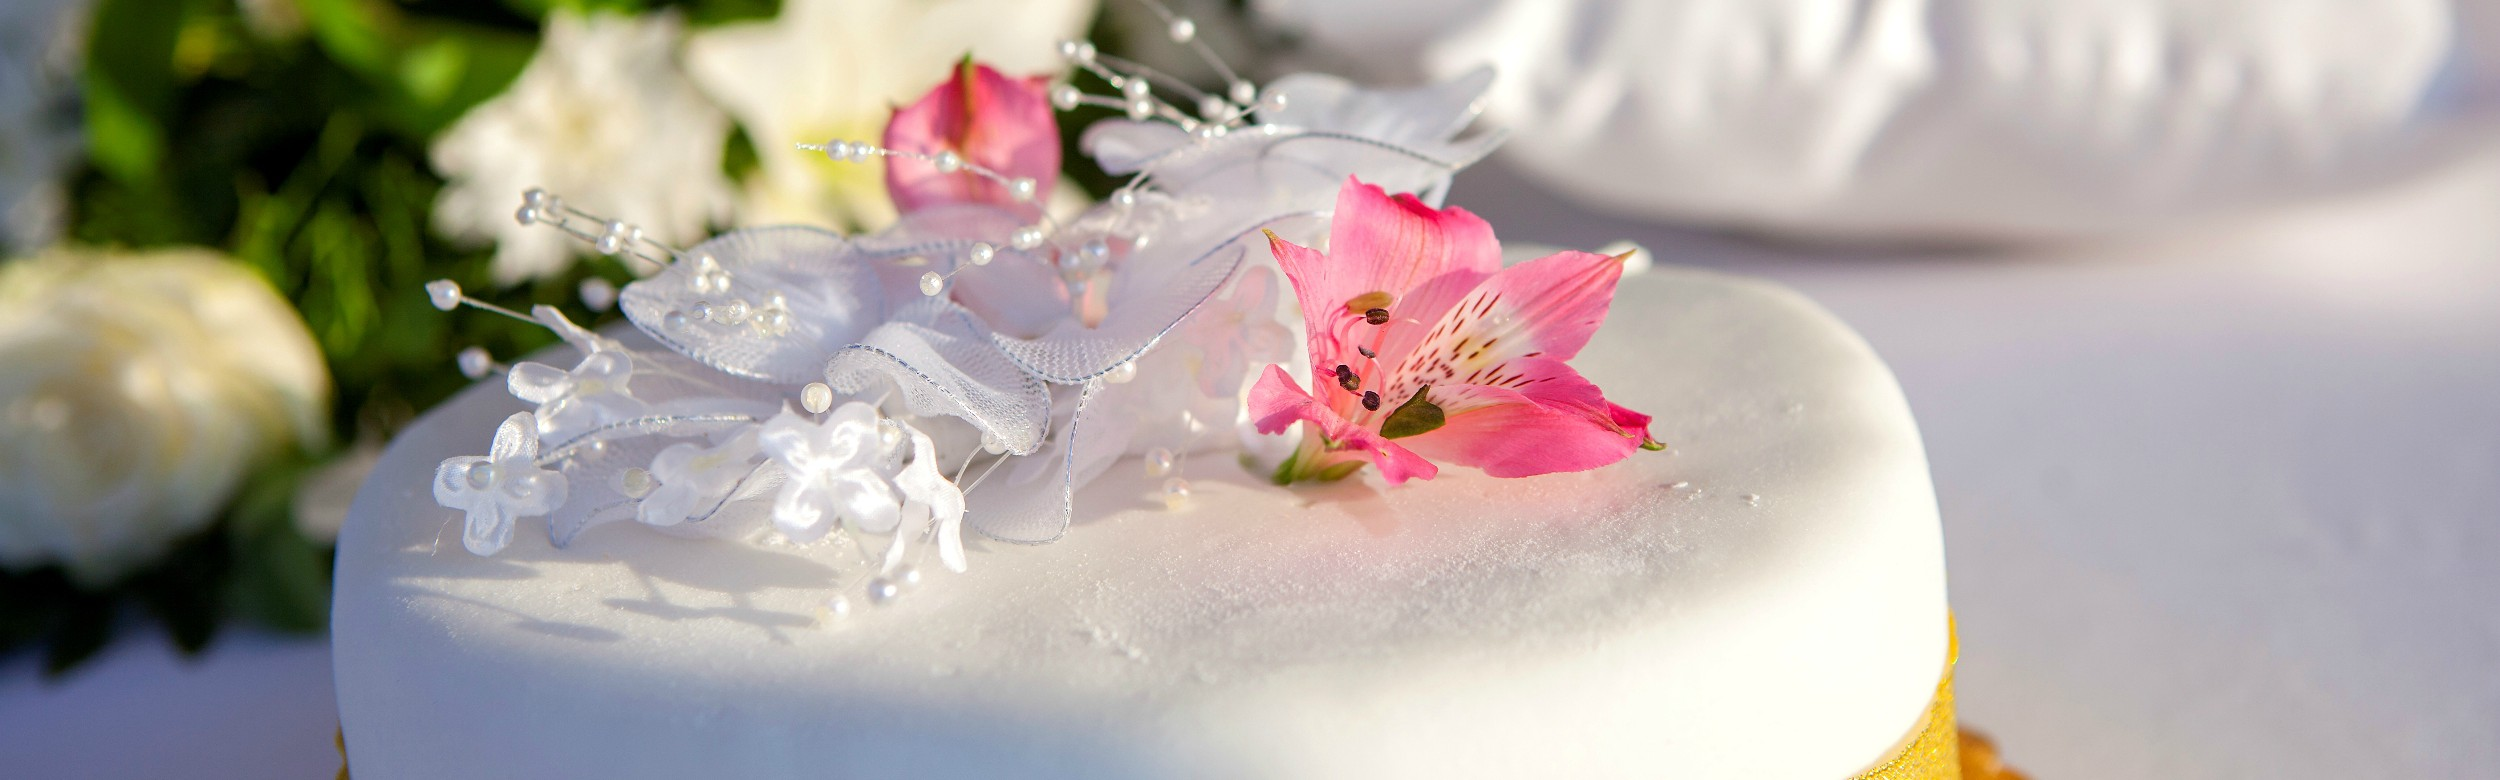 Louis_Imperial_Beach_-_Wedding_detail_4.jpg